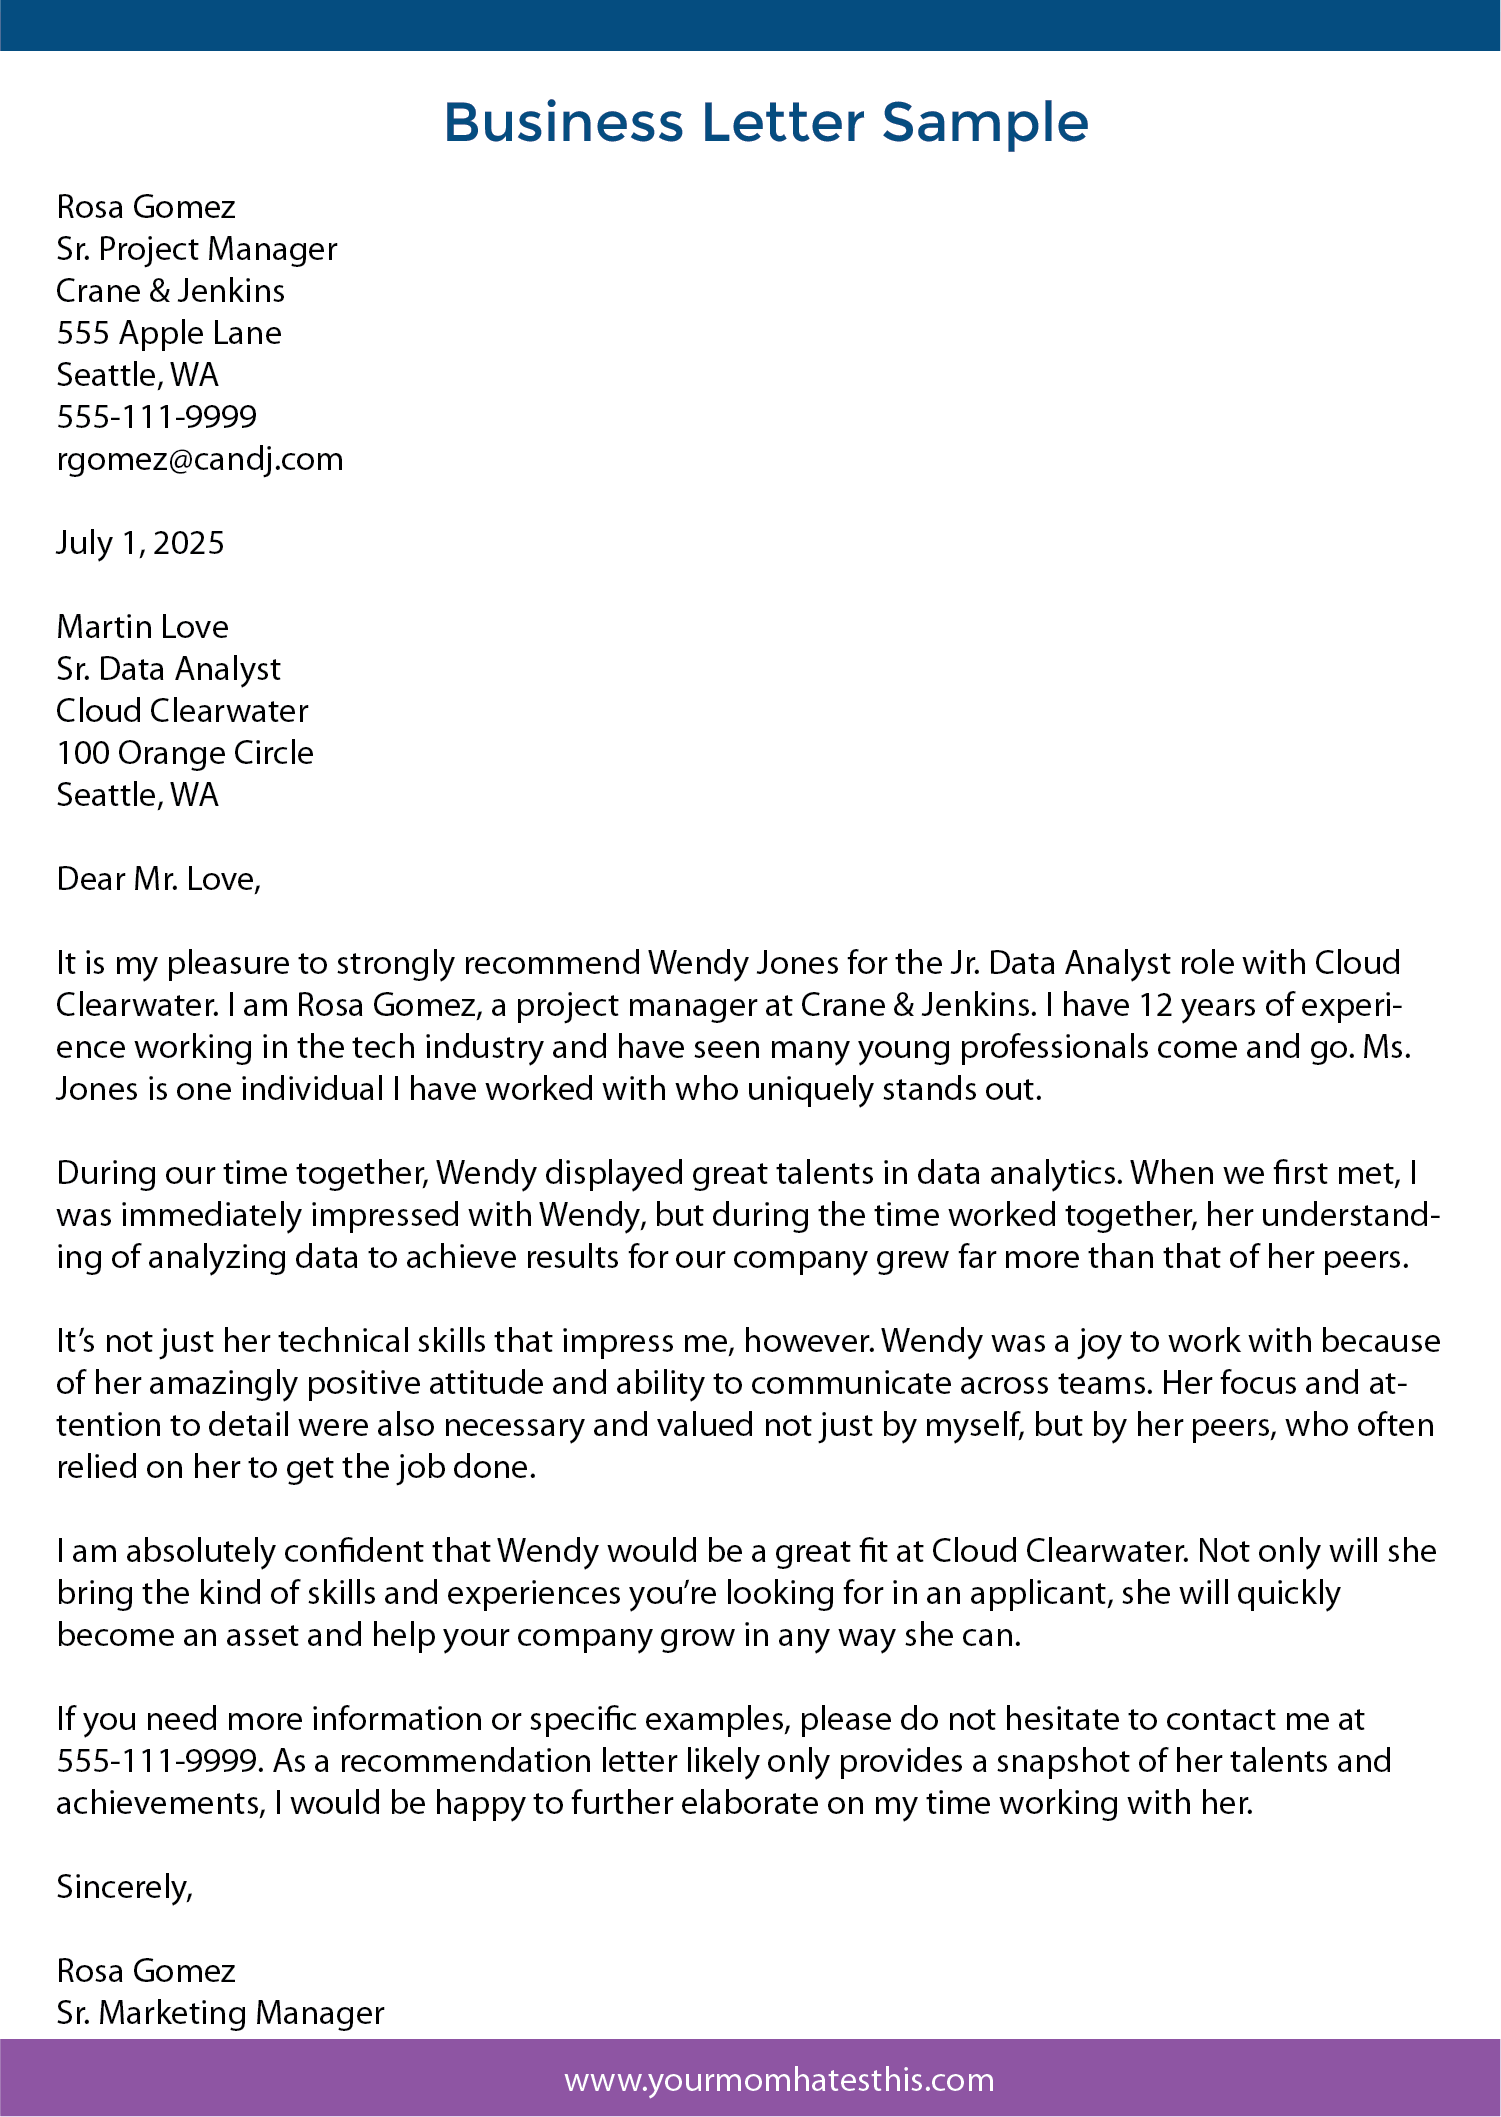 Business Letter How To Write An Effective Letter